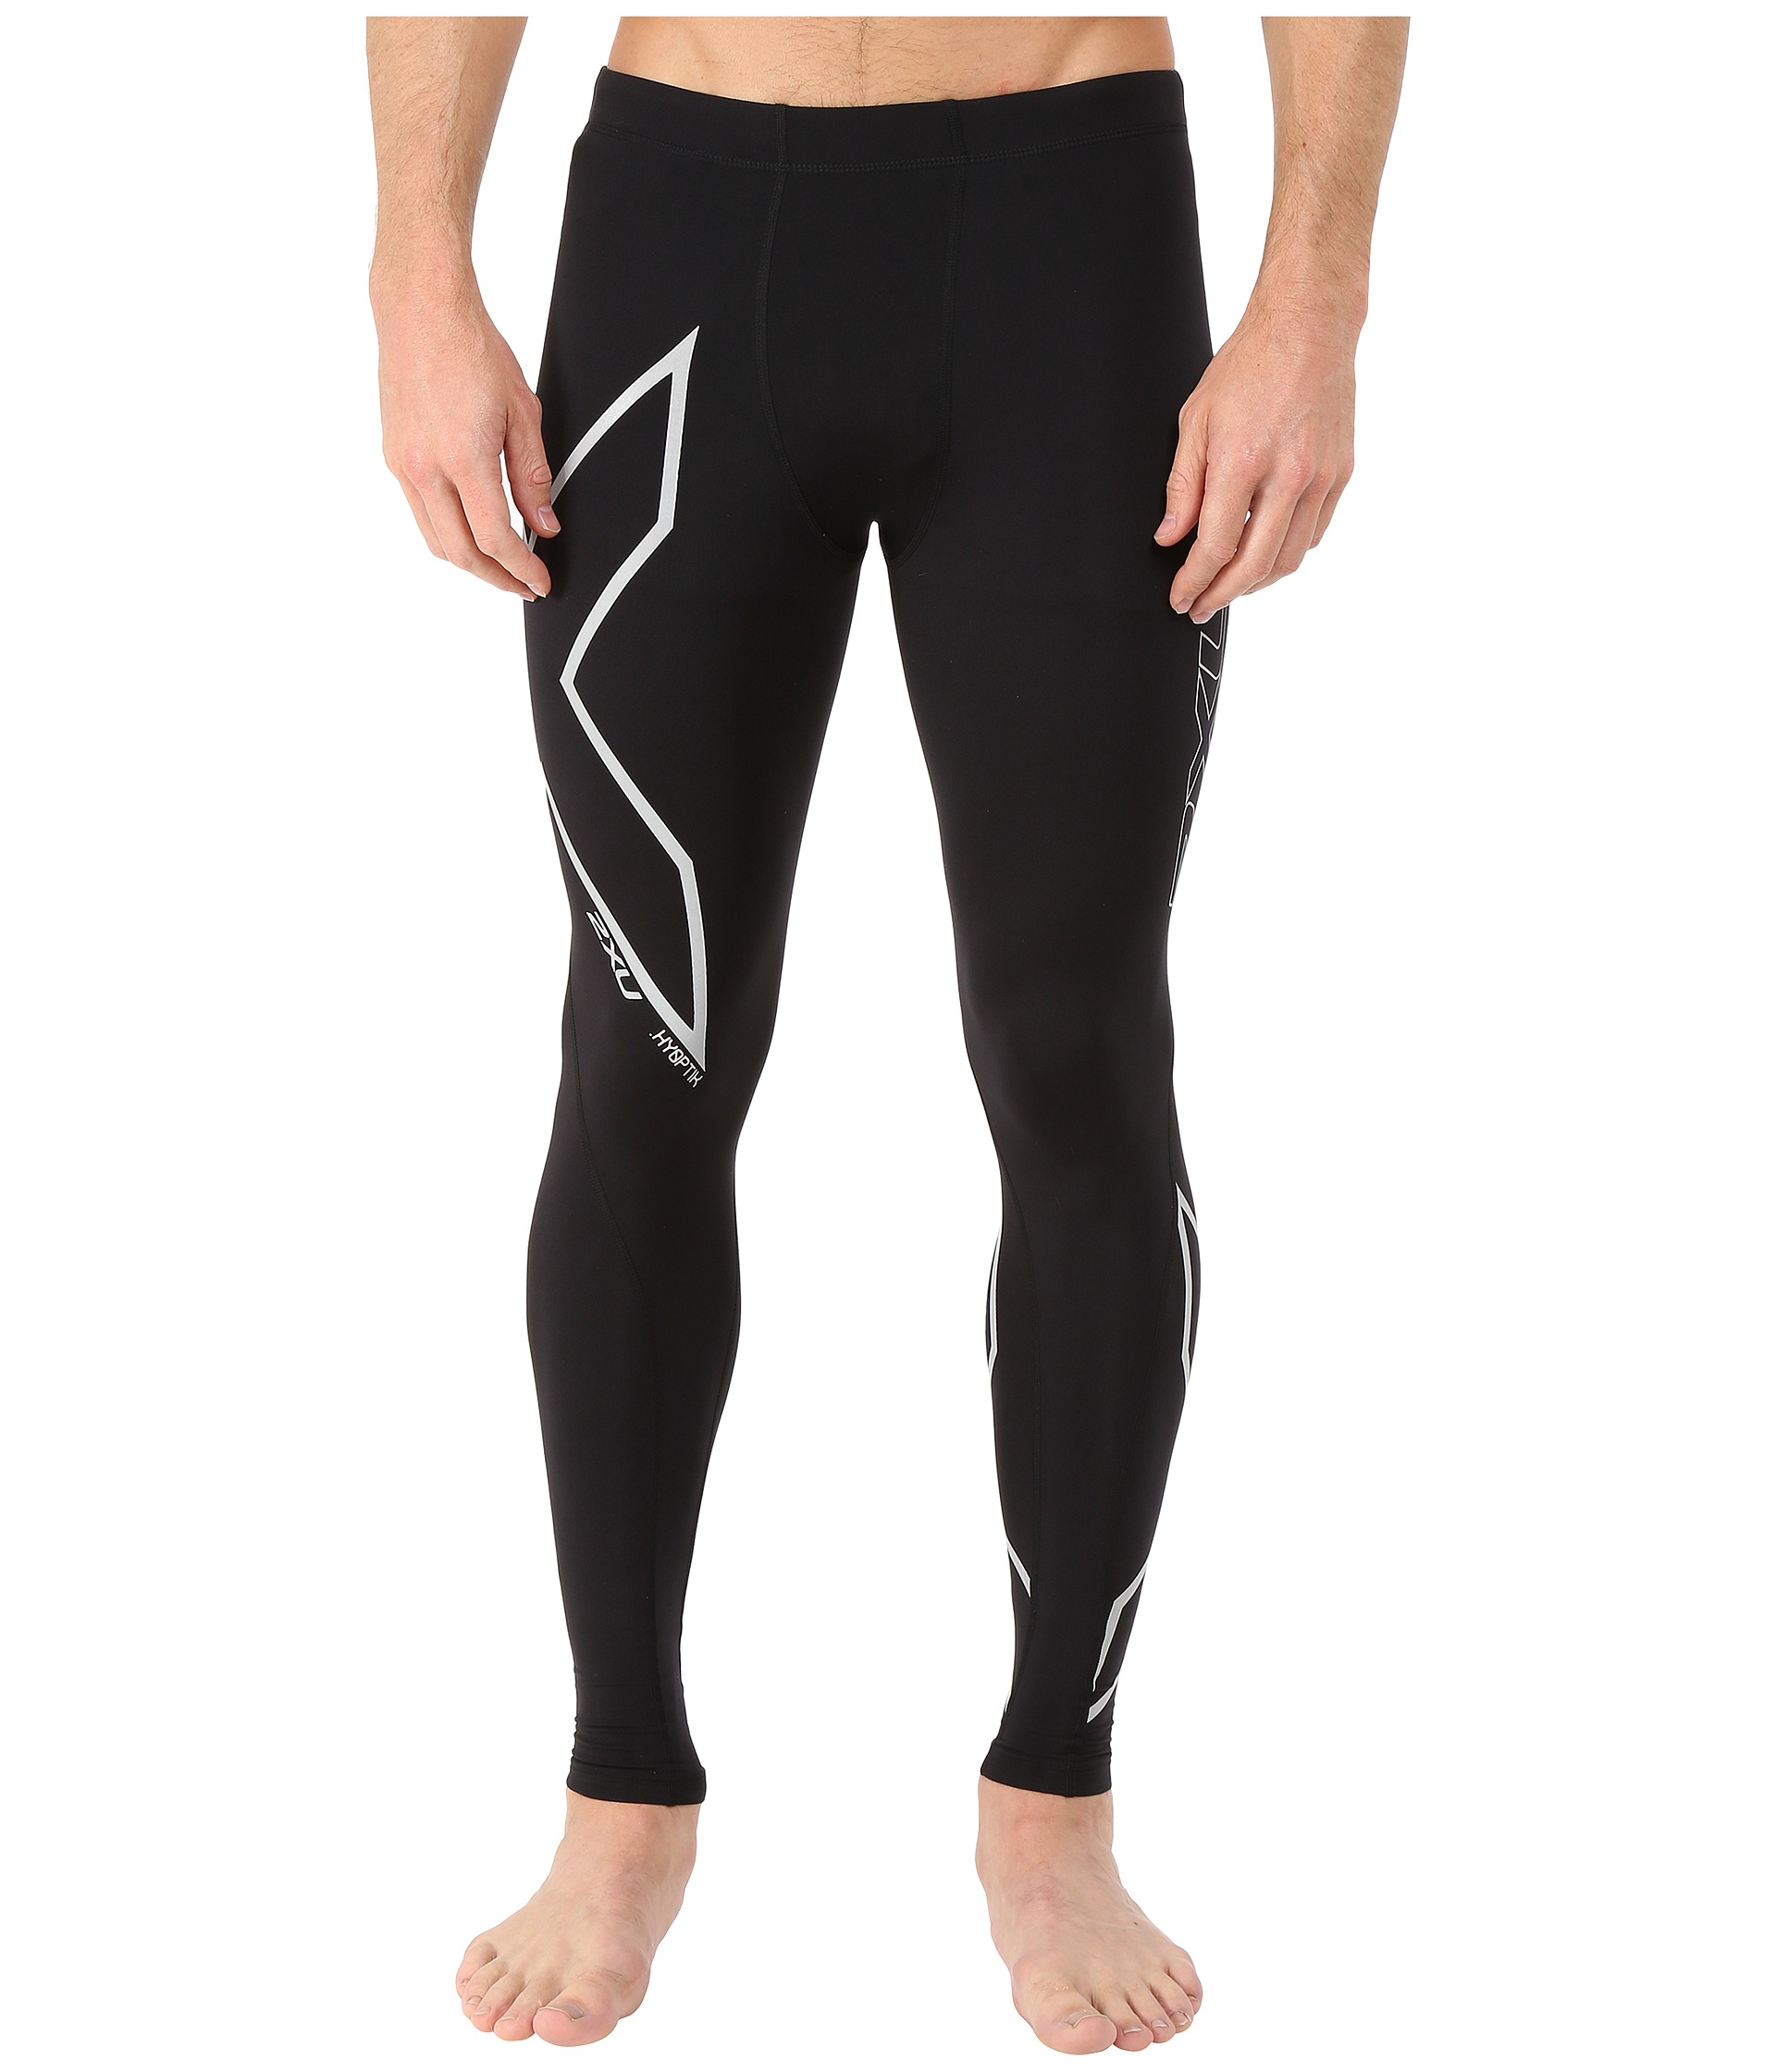 a0a1445c27 delicate 2XU Hyoptik Thermal Compression Tights at - www.b ...